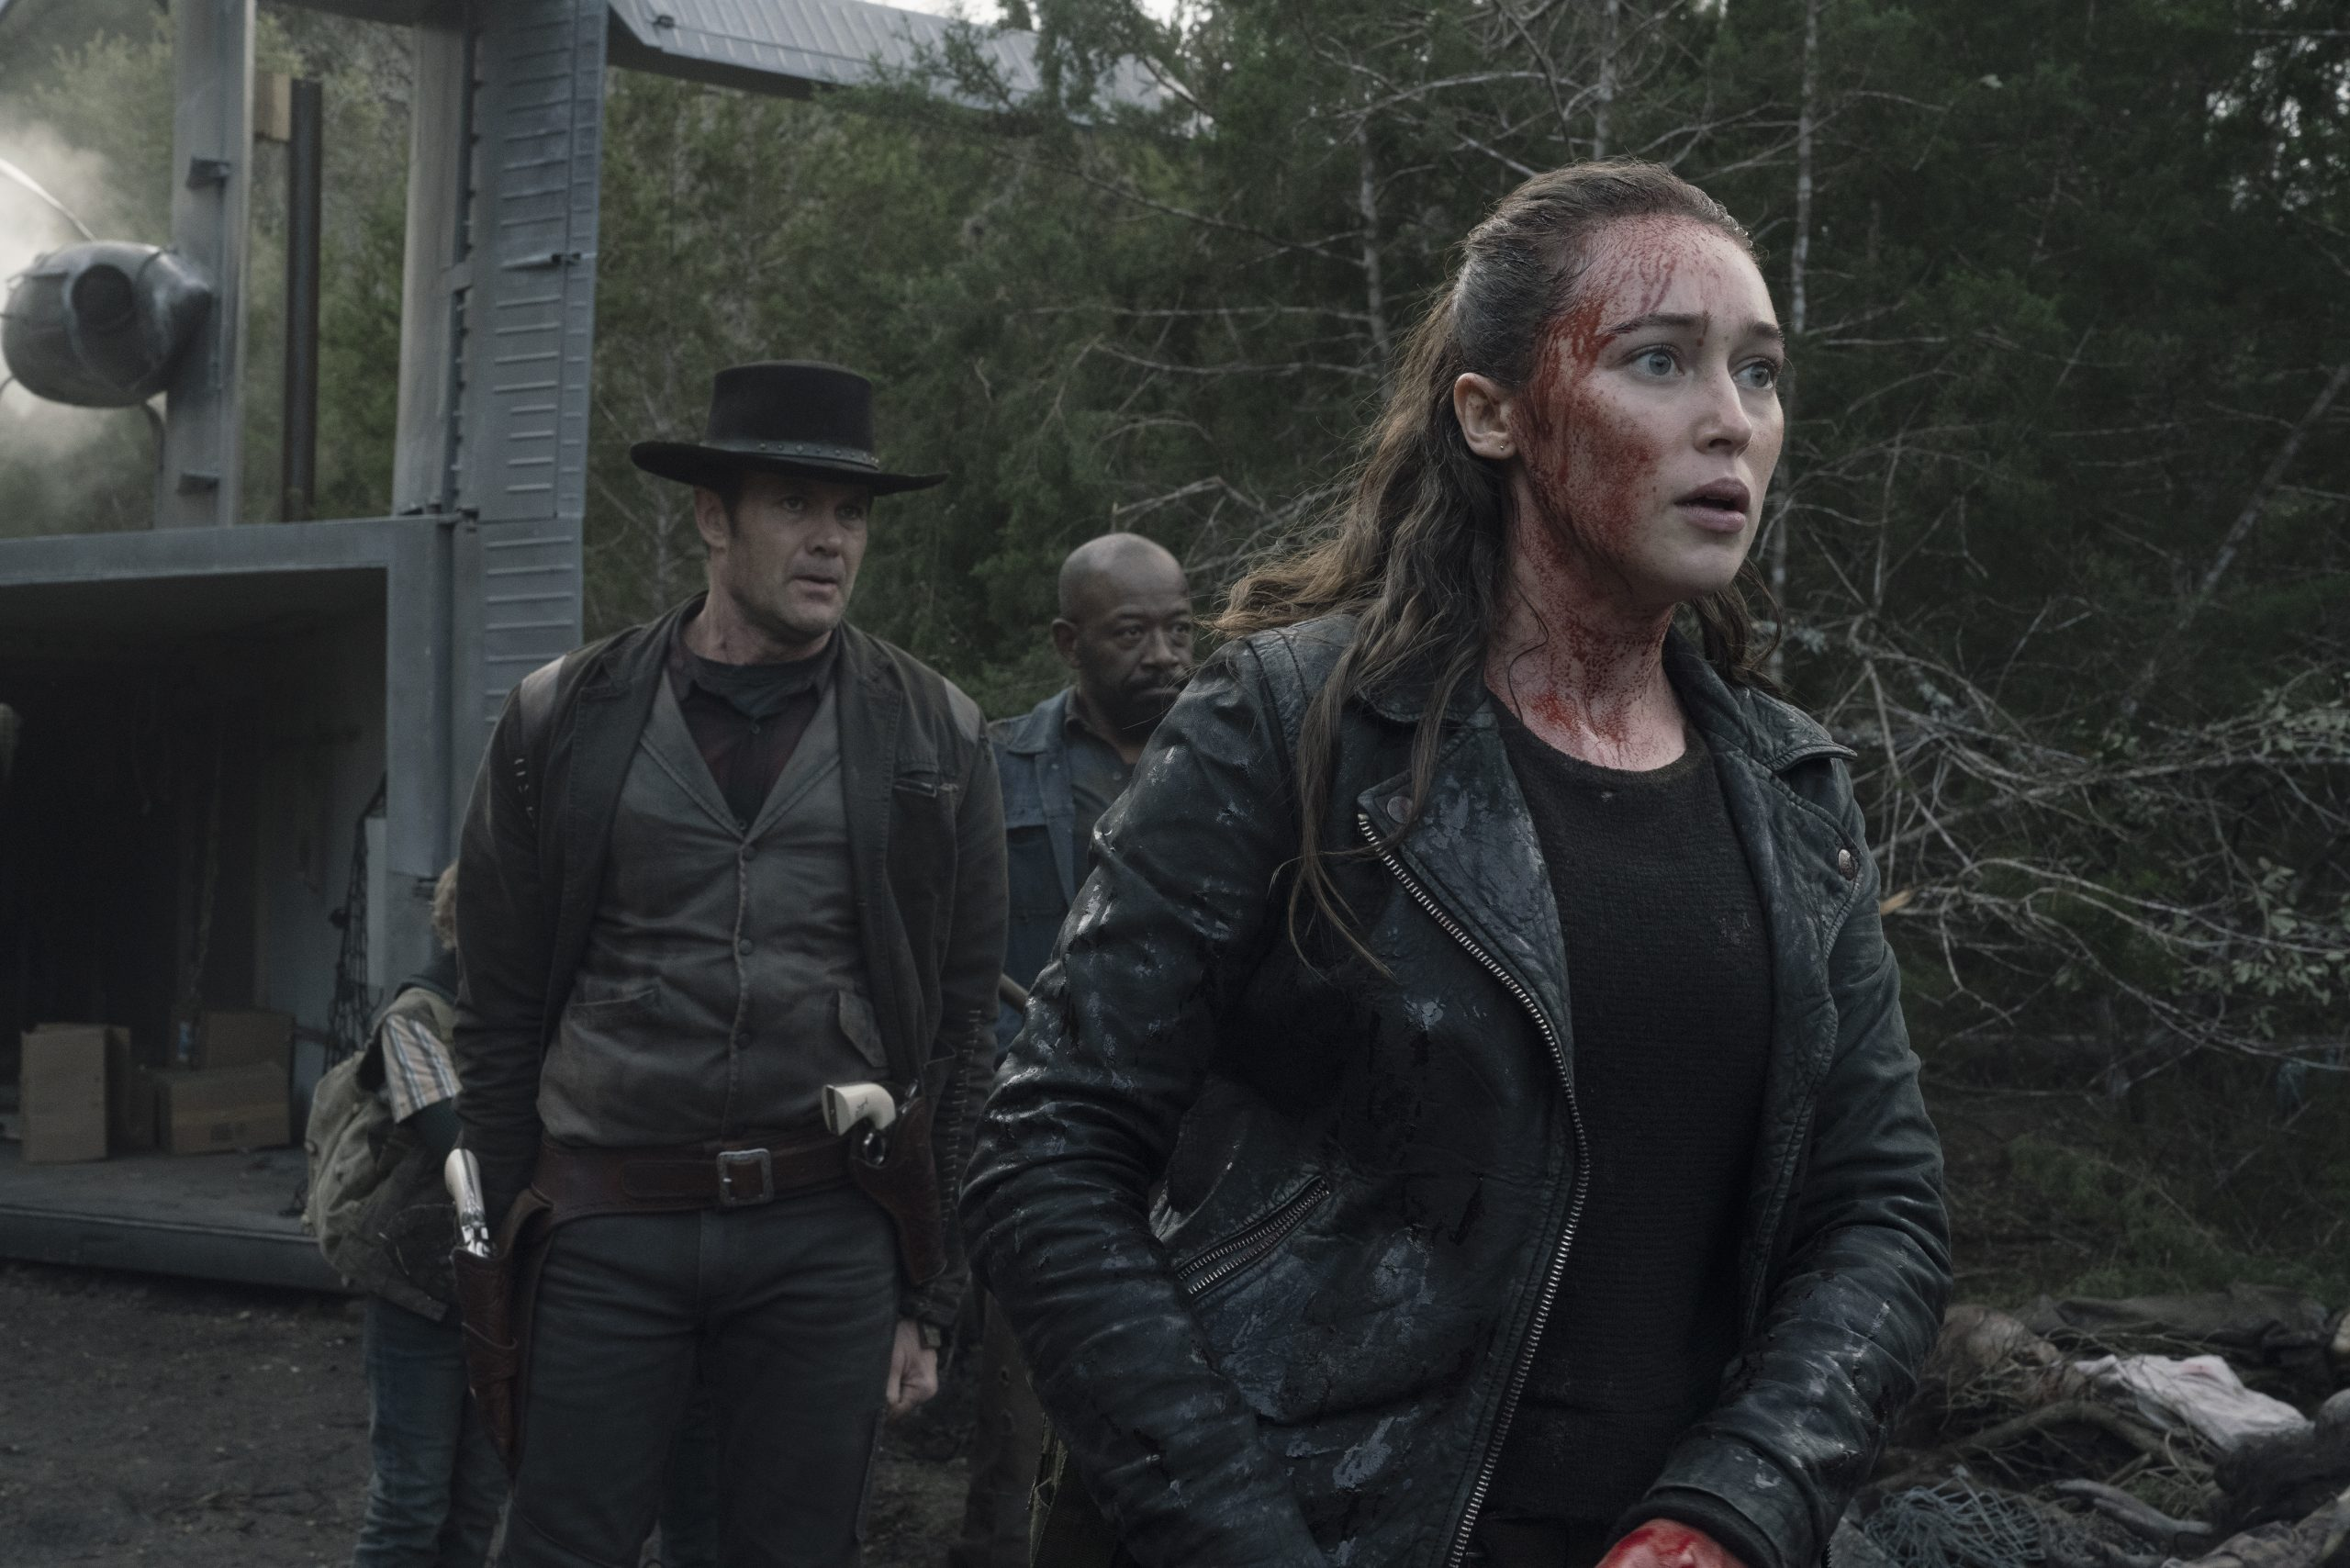 [News] FEAR THE WALKING DEAD S5 Arrives On Blu-ray/DVD This May